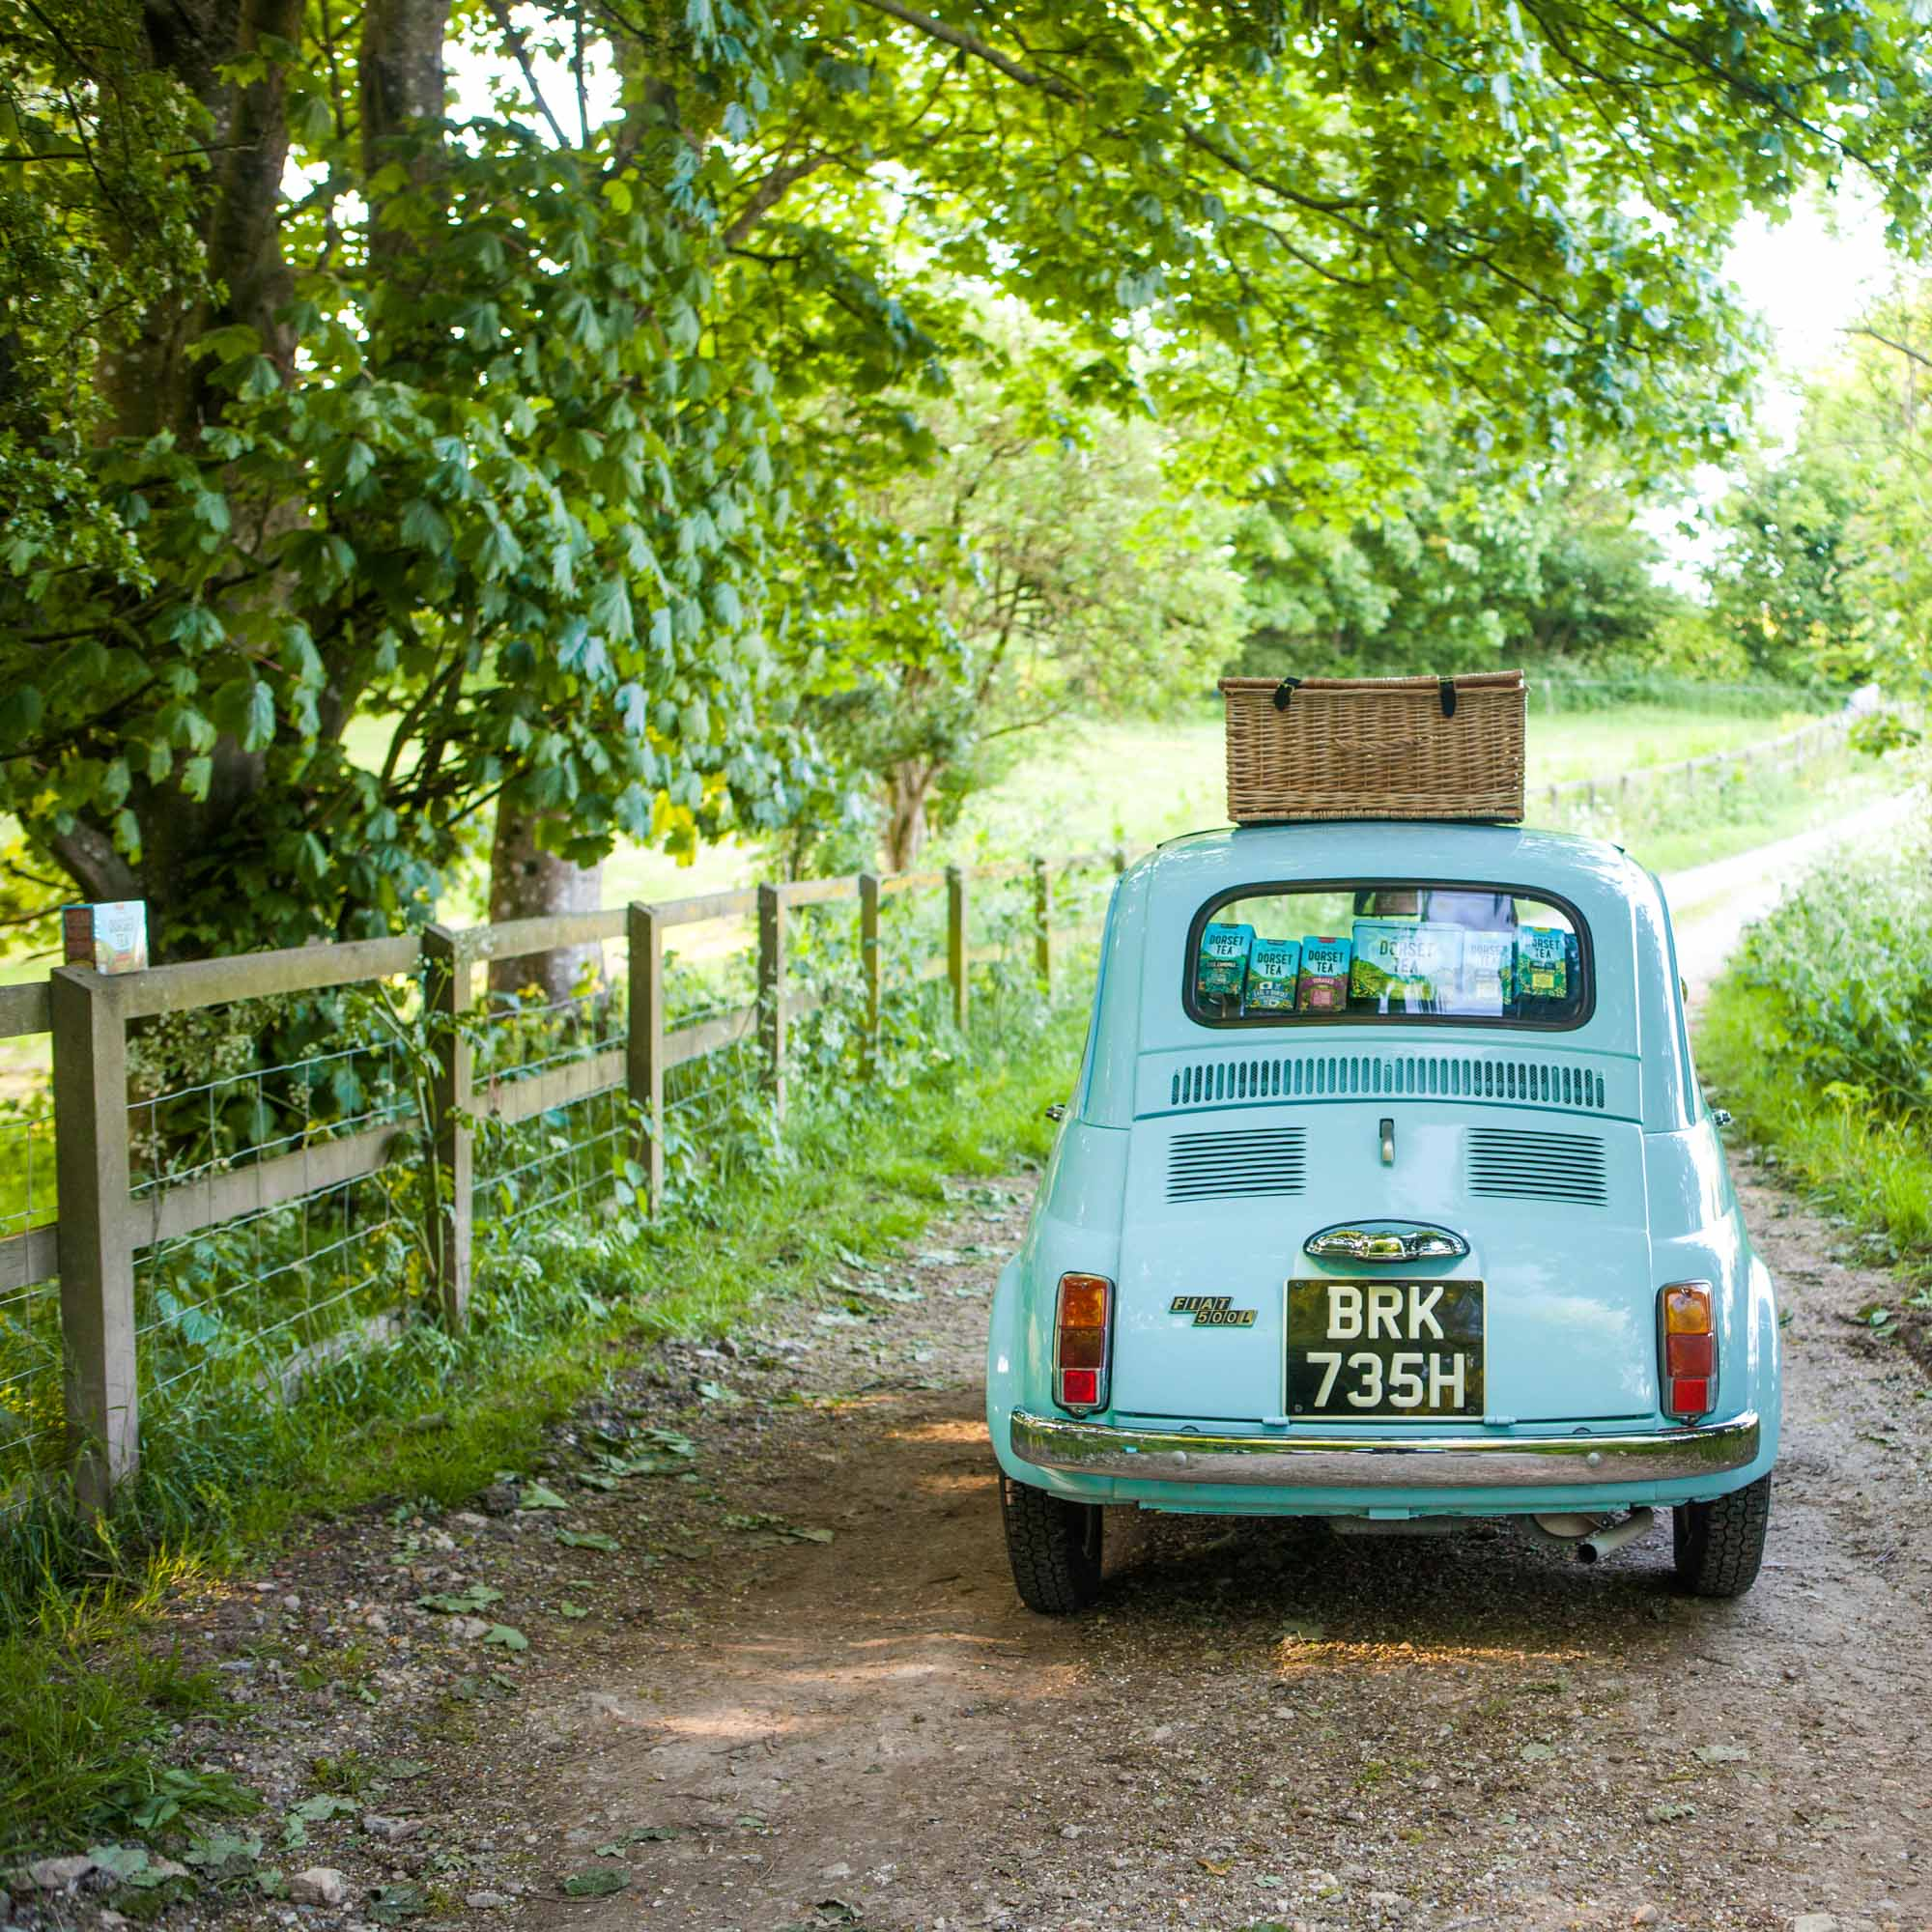 Tea fiat, Dorset- Lifestyle photographer